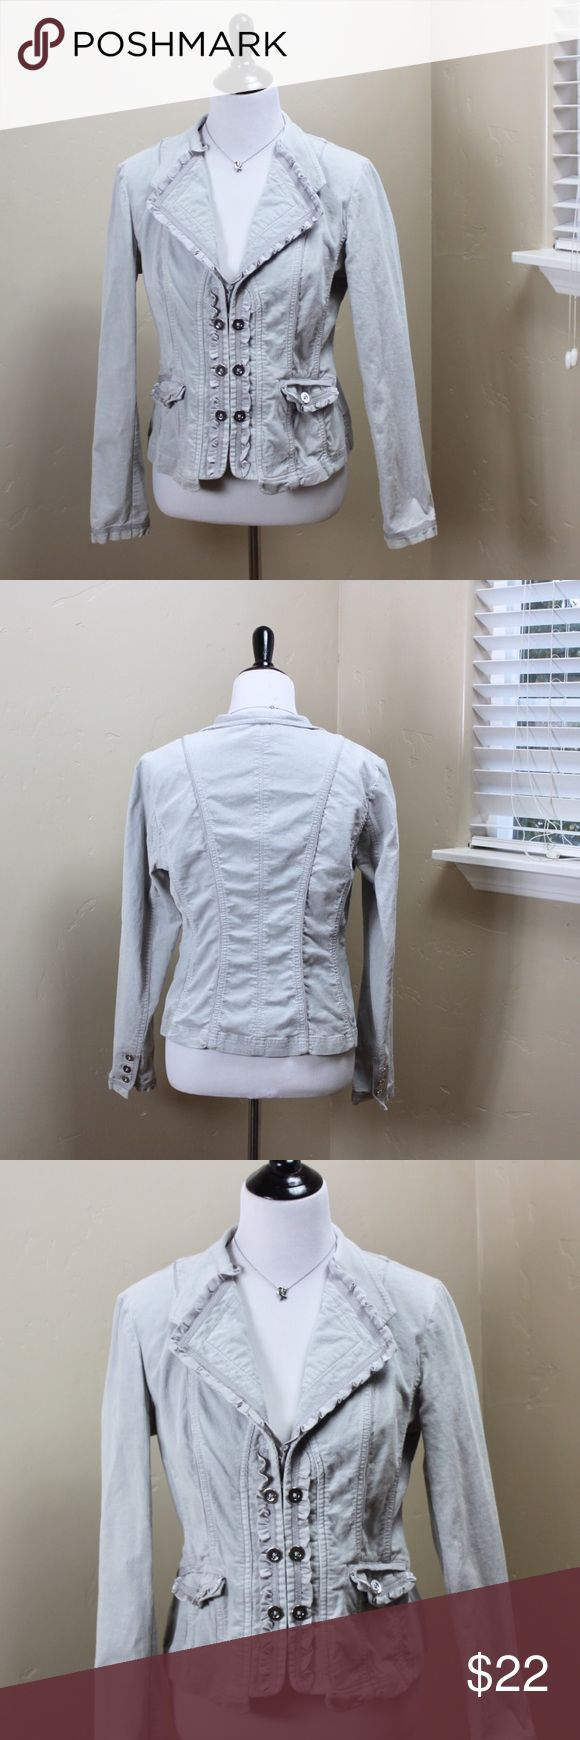 "White House Black Market Jacket WHBM Jacket.  Light gray corduroy jacket with hook & eye closures & ruffle trim. Fitted jacket (98% cotton, 2% spandex)  with silver accent buttons. Size tag is missing. WHBM measures this an 8/10. Listing as a medium - closer to an 8. Flat approx measurements: 19.5"" pit to pit, 17"" waist, 19"" hips. Notable flaws - last pic. Discoloration at bottom of sleeves & under pits. Only notable when making field goal calls or stretching your wrists out to be arrested…"